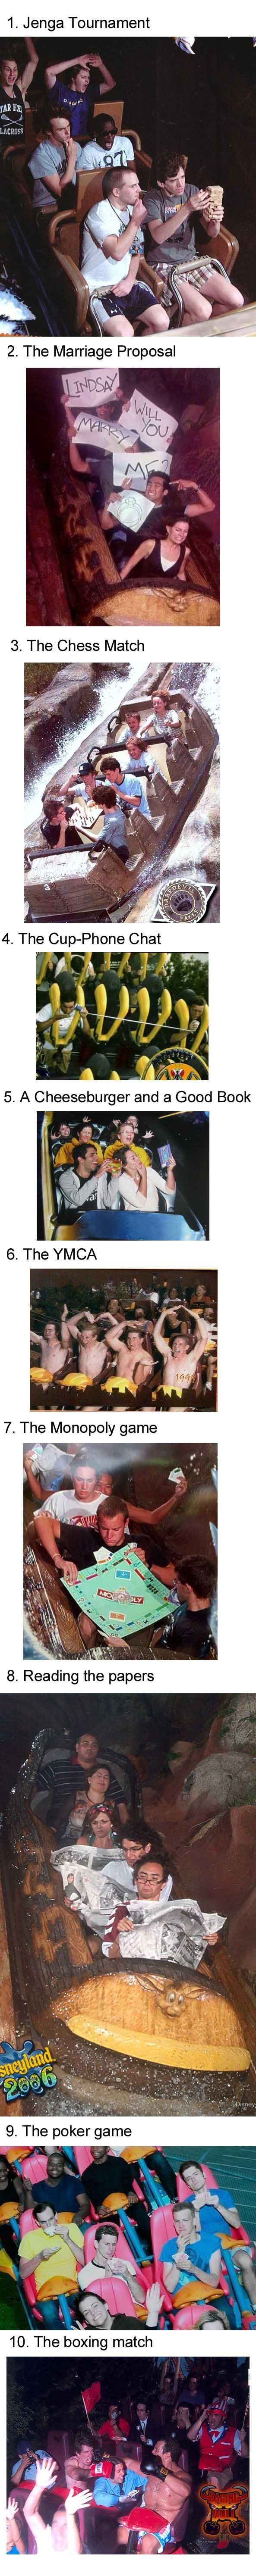 That last one though the guy in the middle was so unfortunate